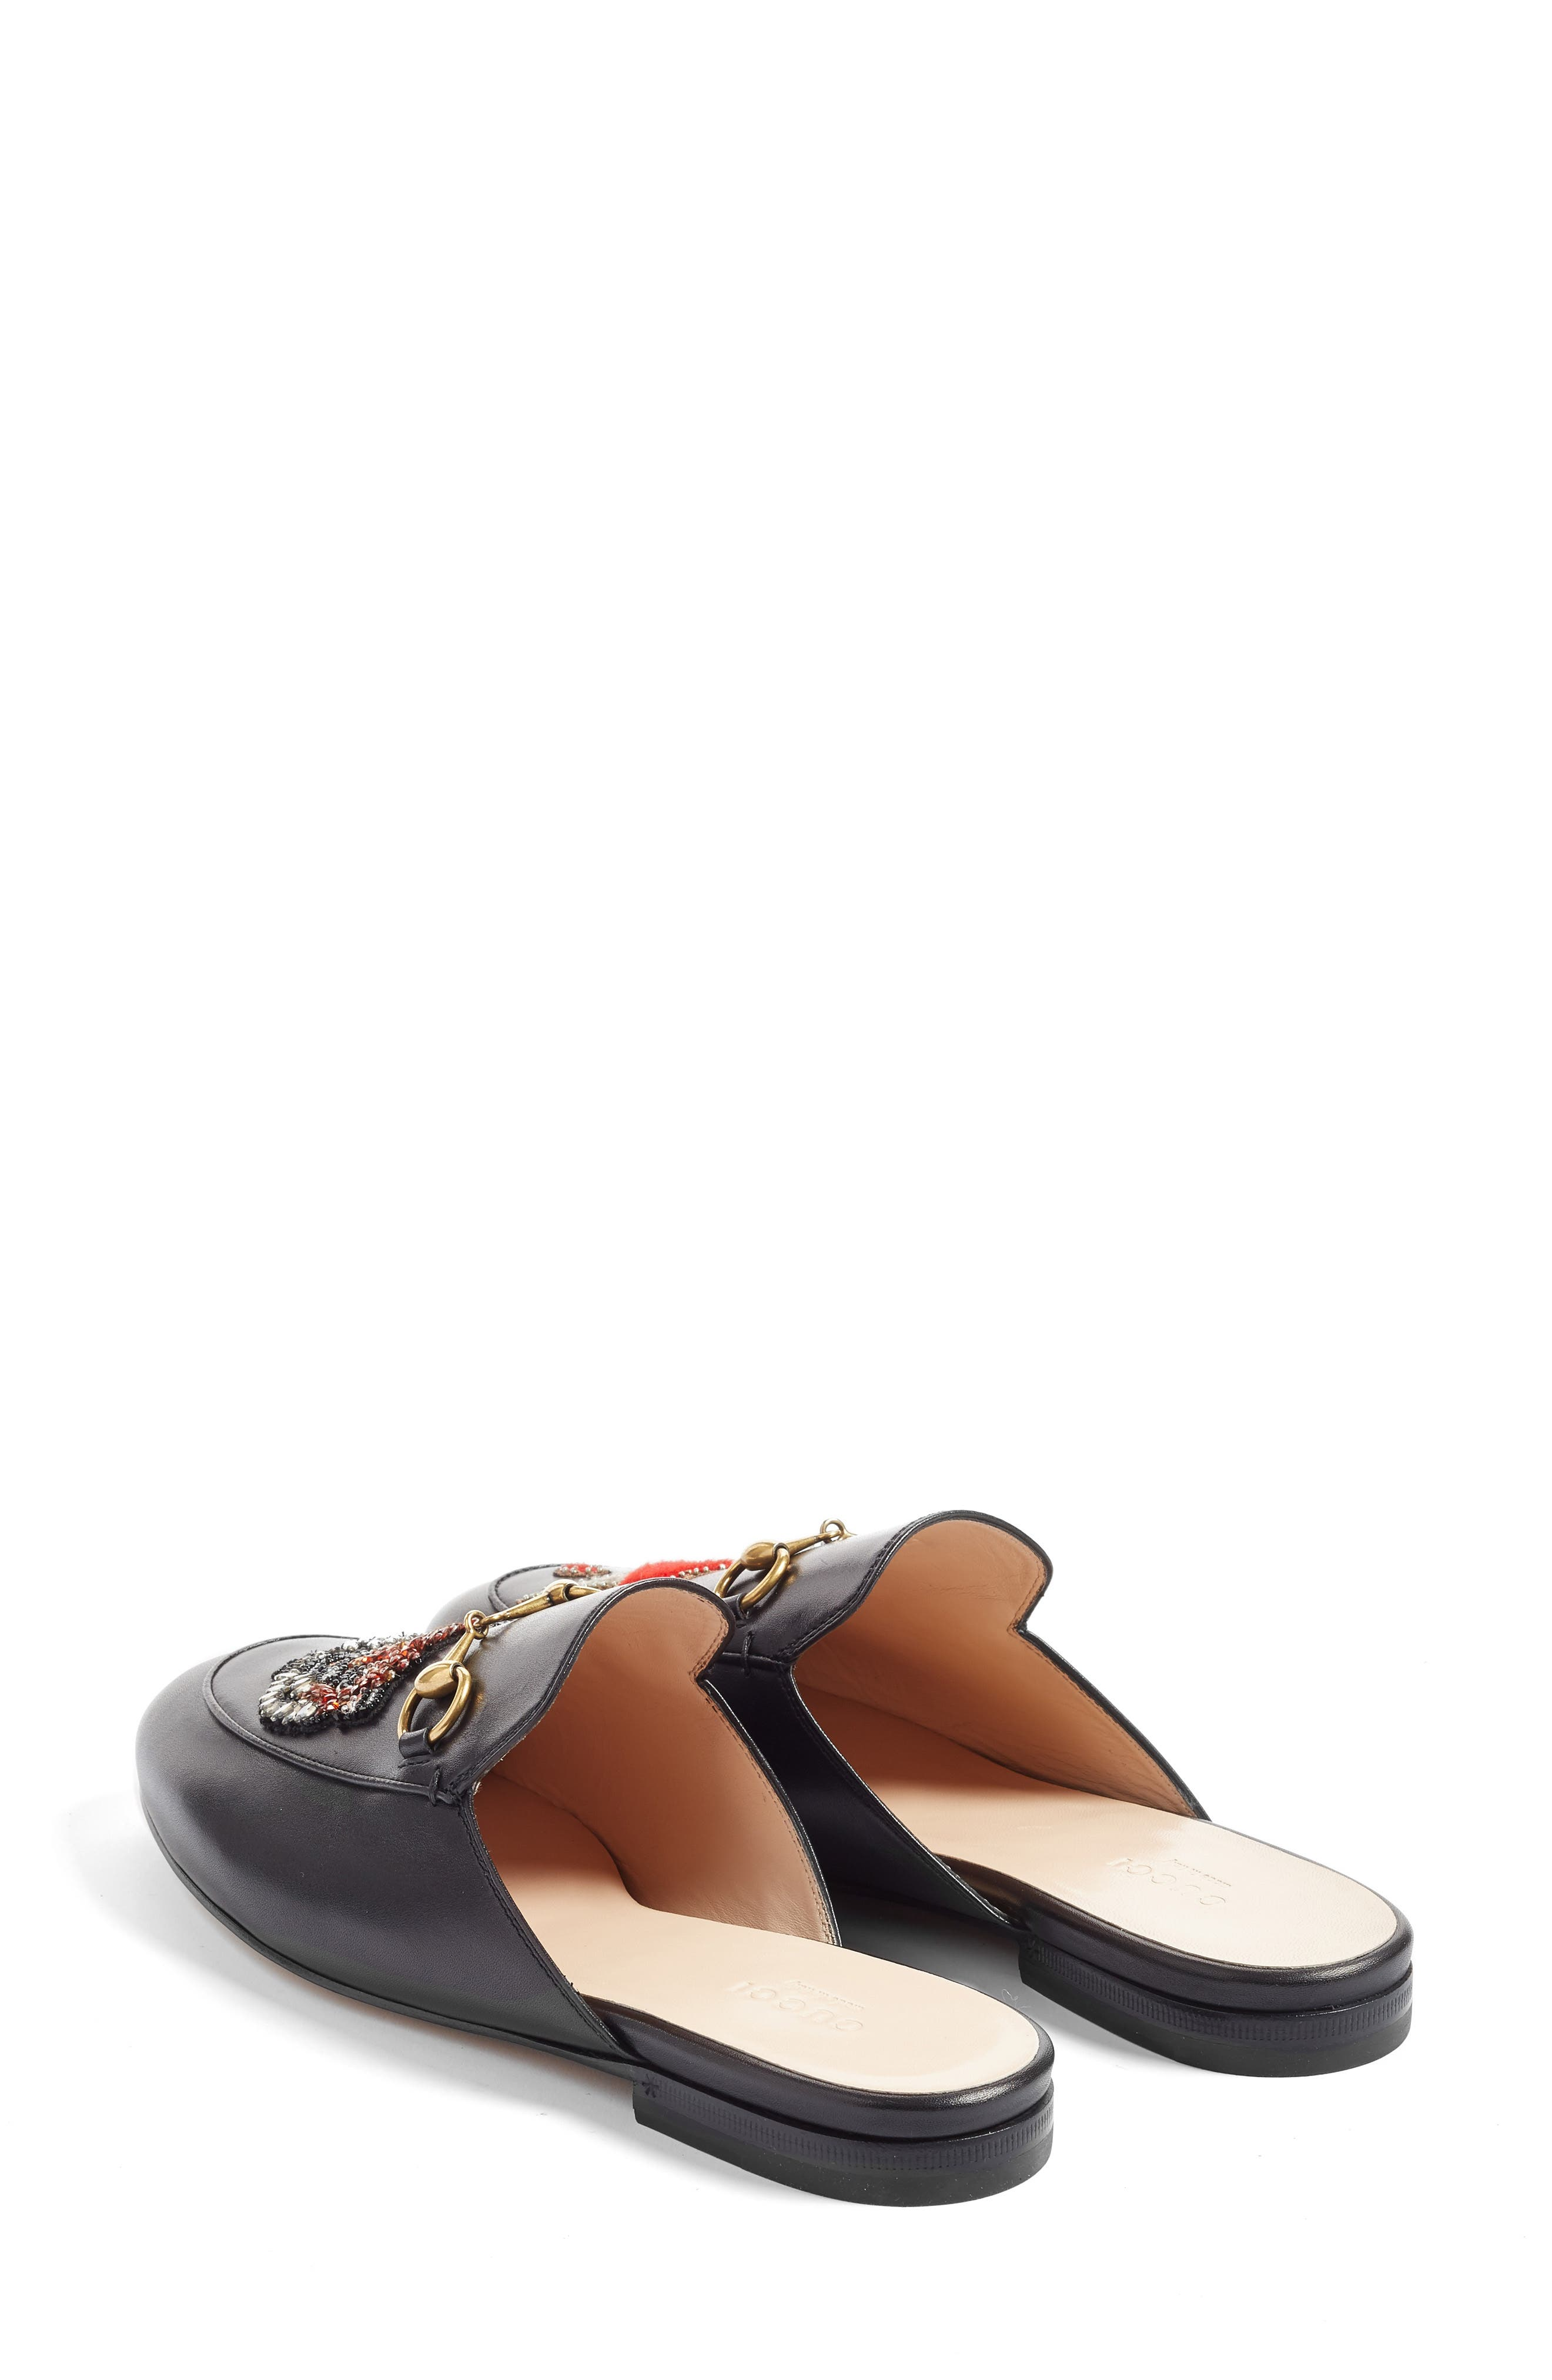 Alternate Image 2  - Gucci Princetown Mule Loafer (Women)